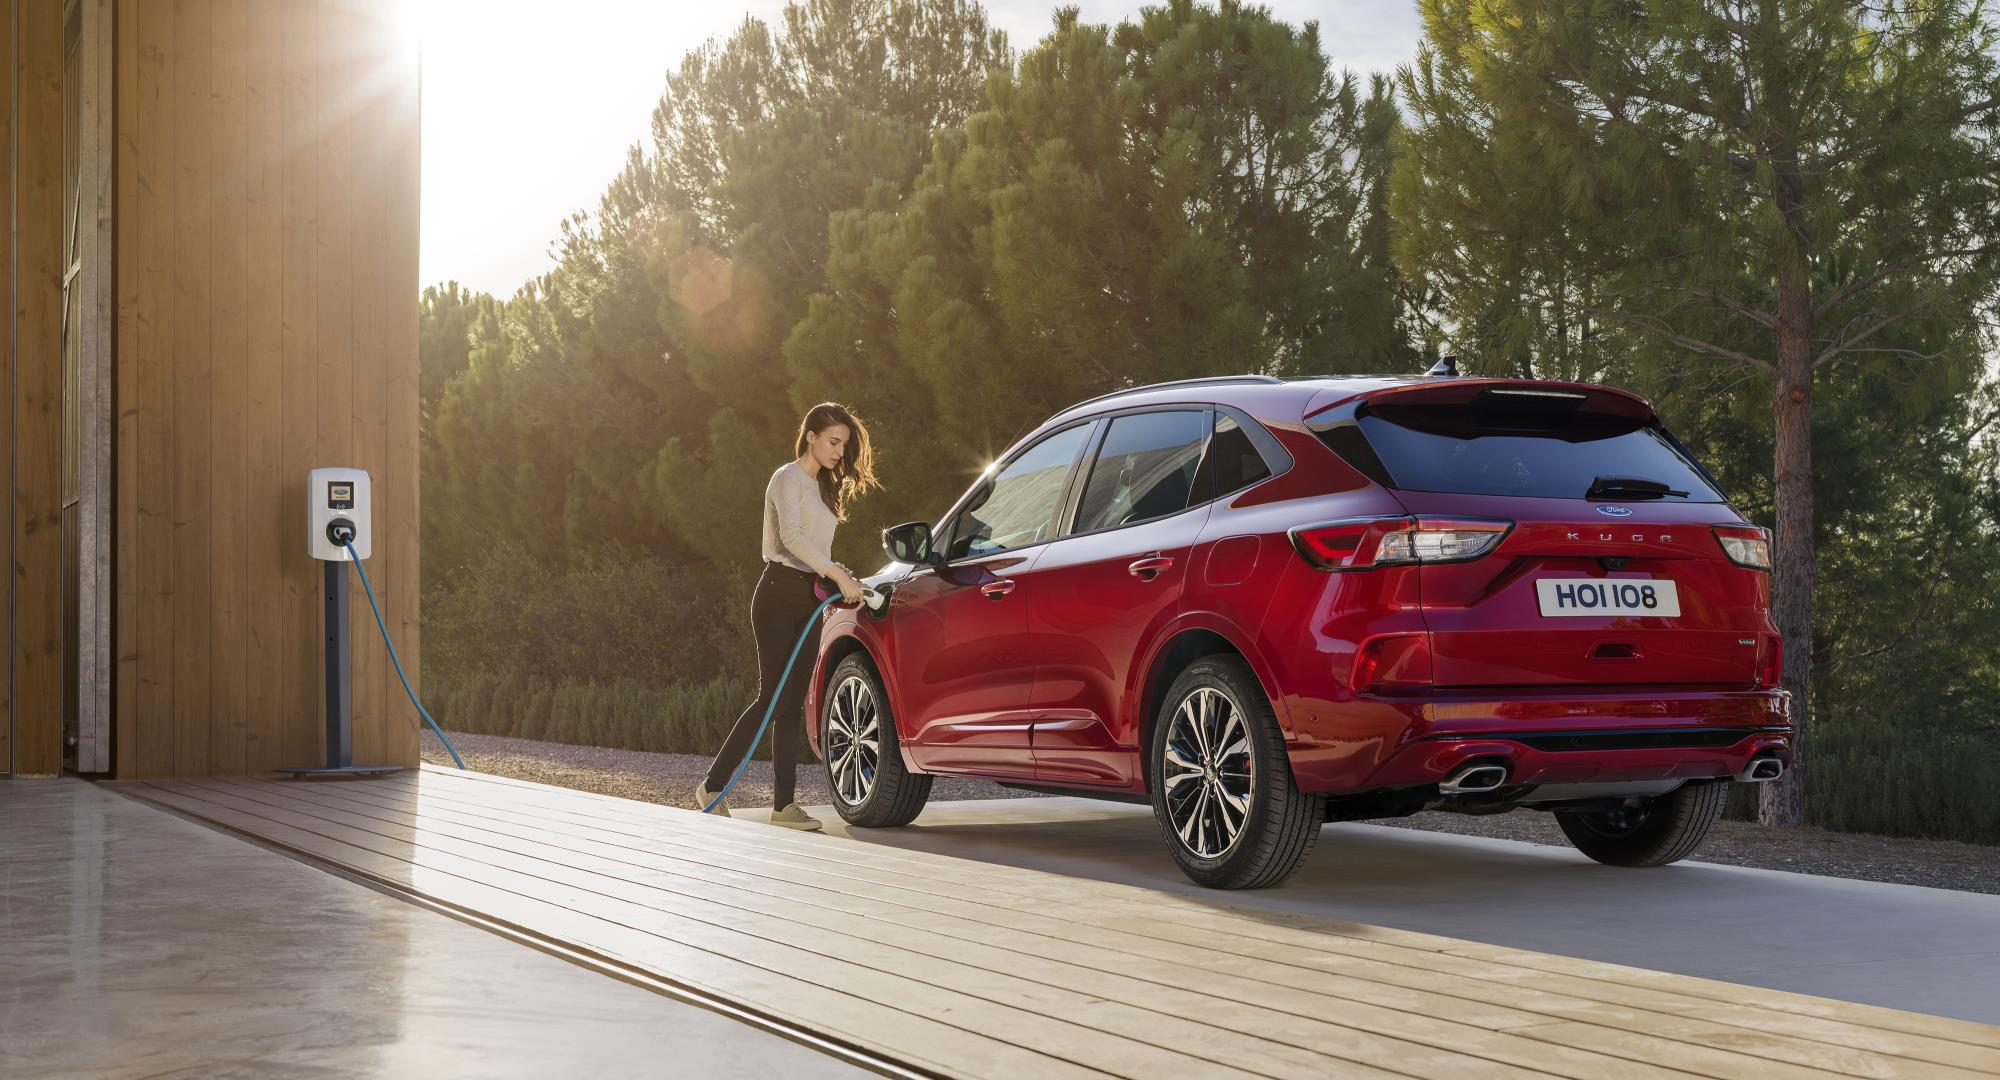 The hybrid Kuga has a claimed all-electric range of 30 miles